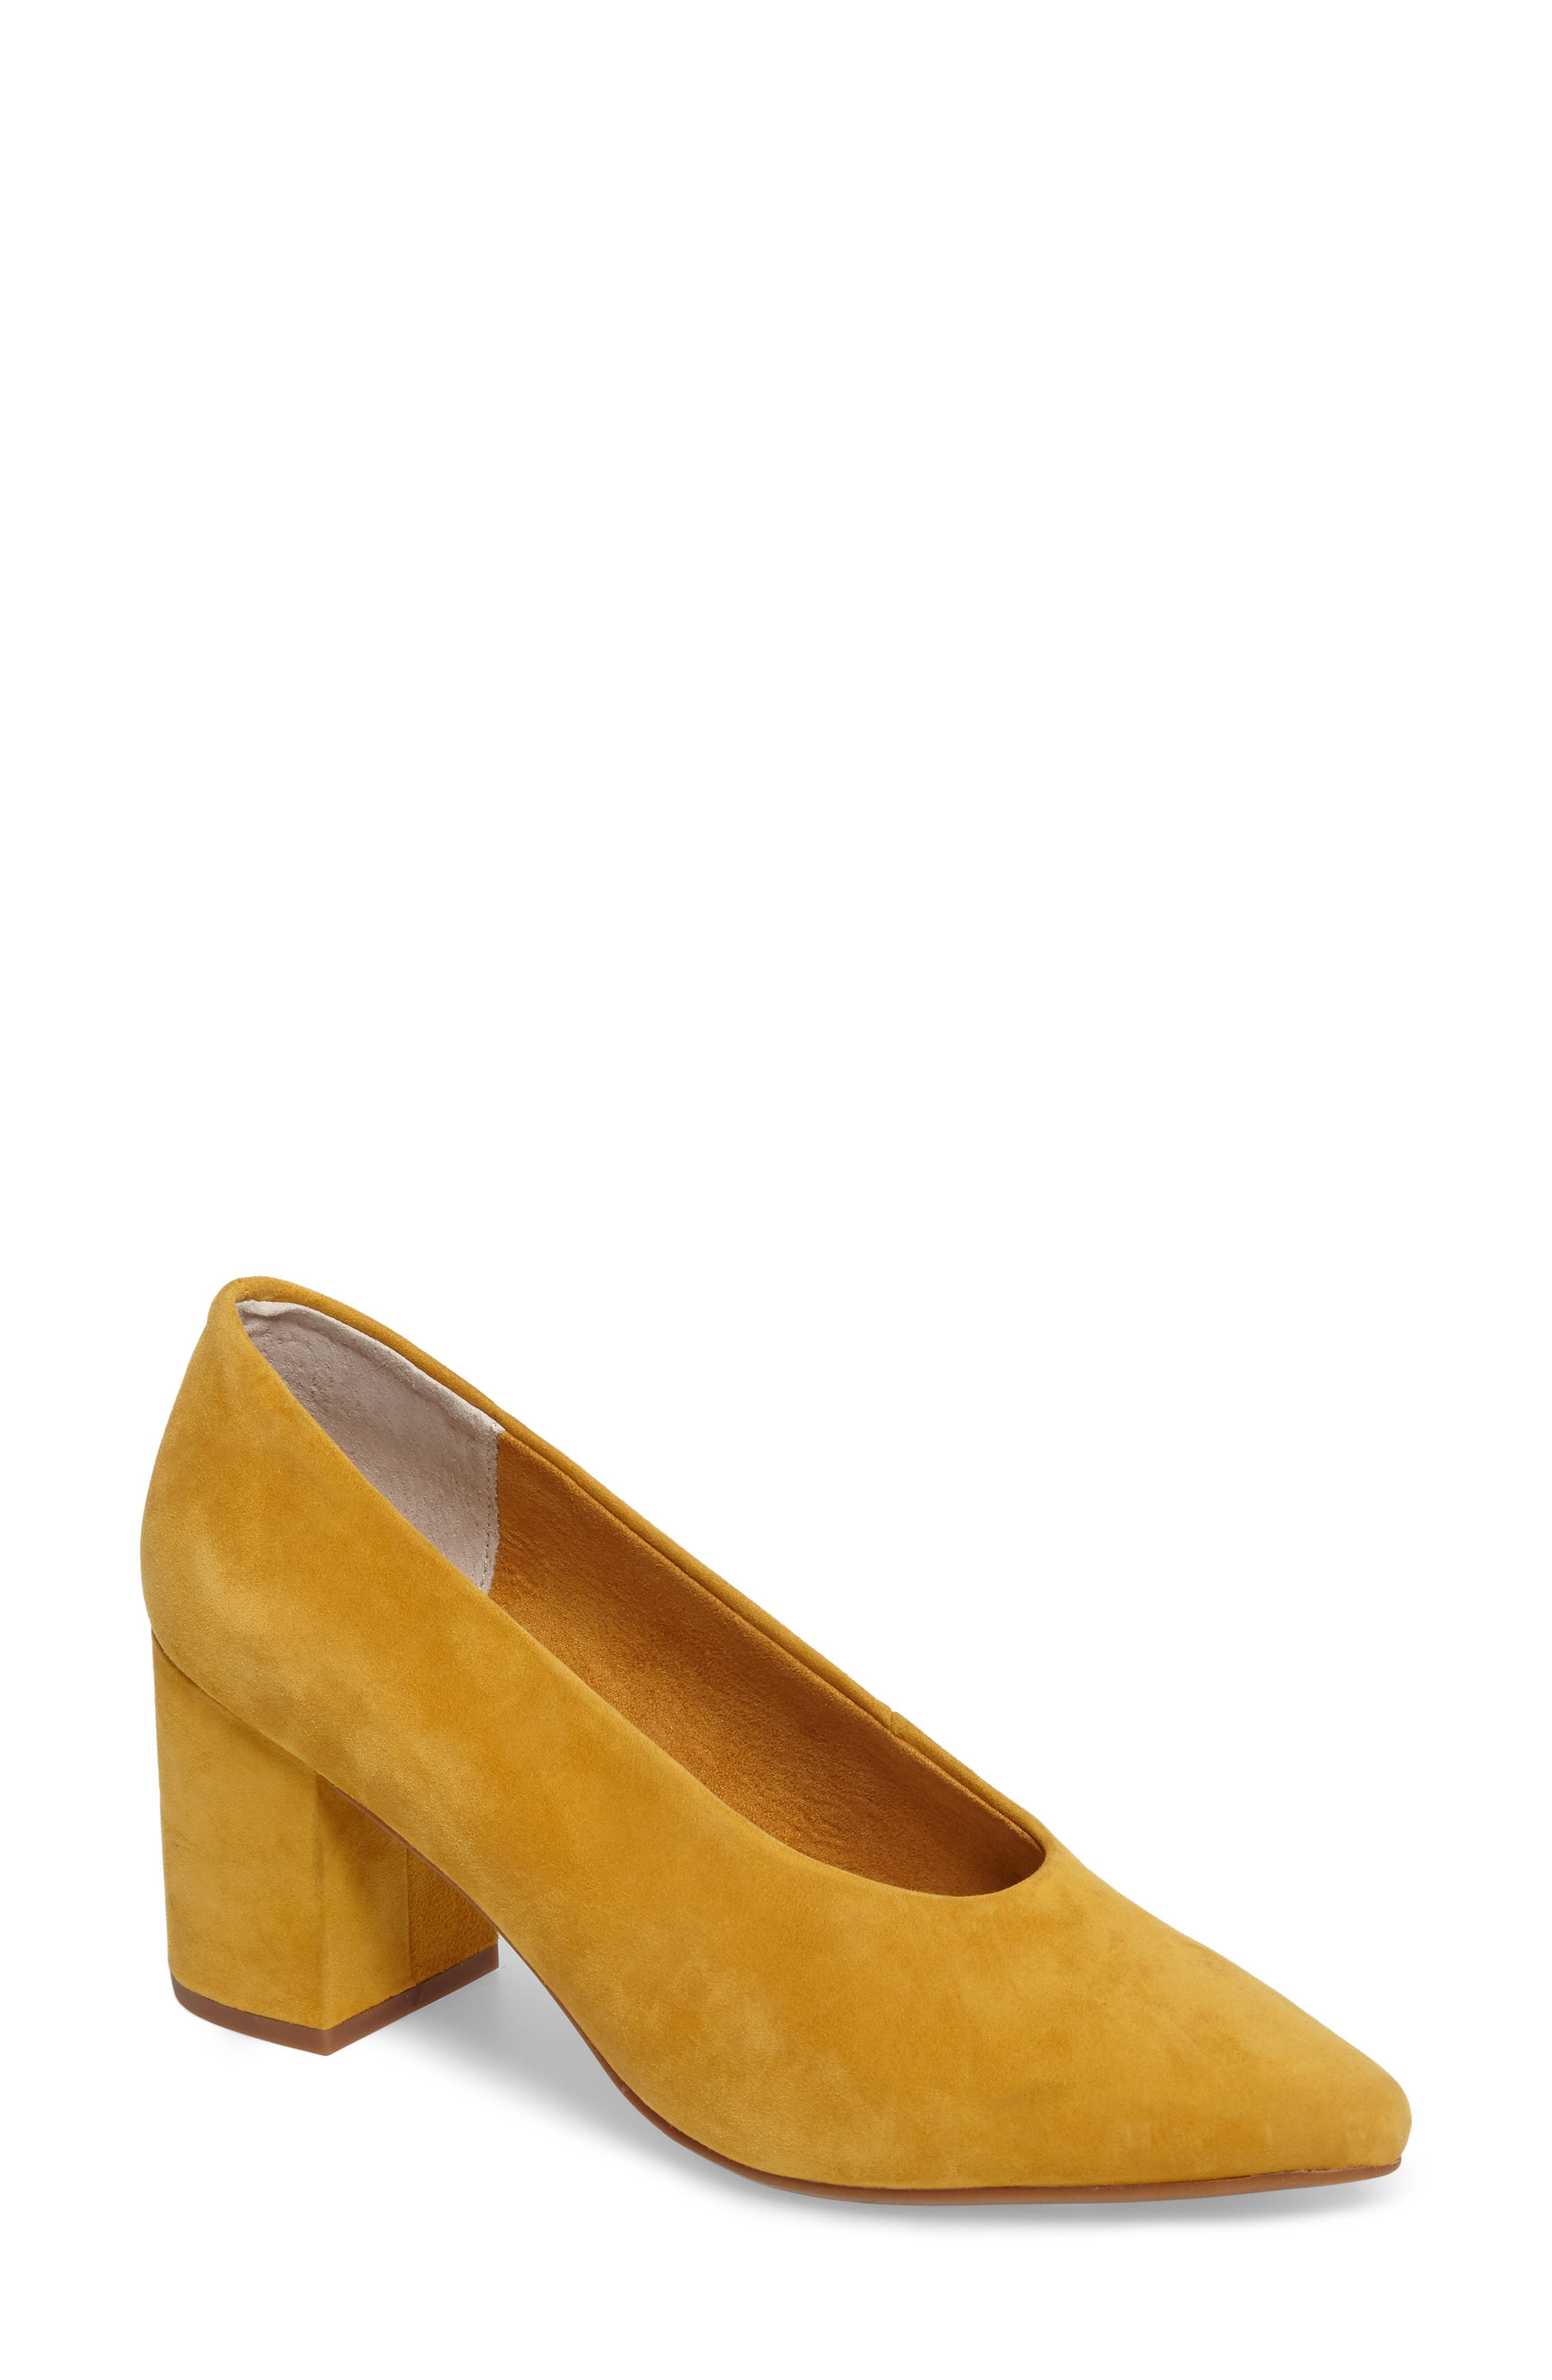 Rehearse Pointy Toe Pump,                             Main thumbnail 1, color,                             MUSTARD SUEDE